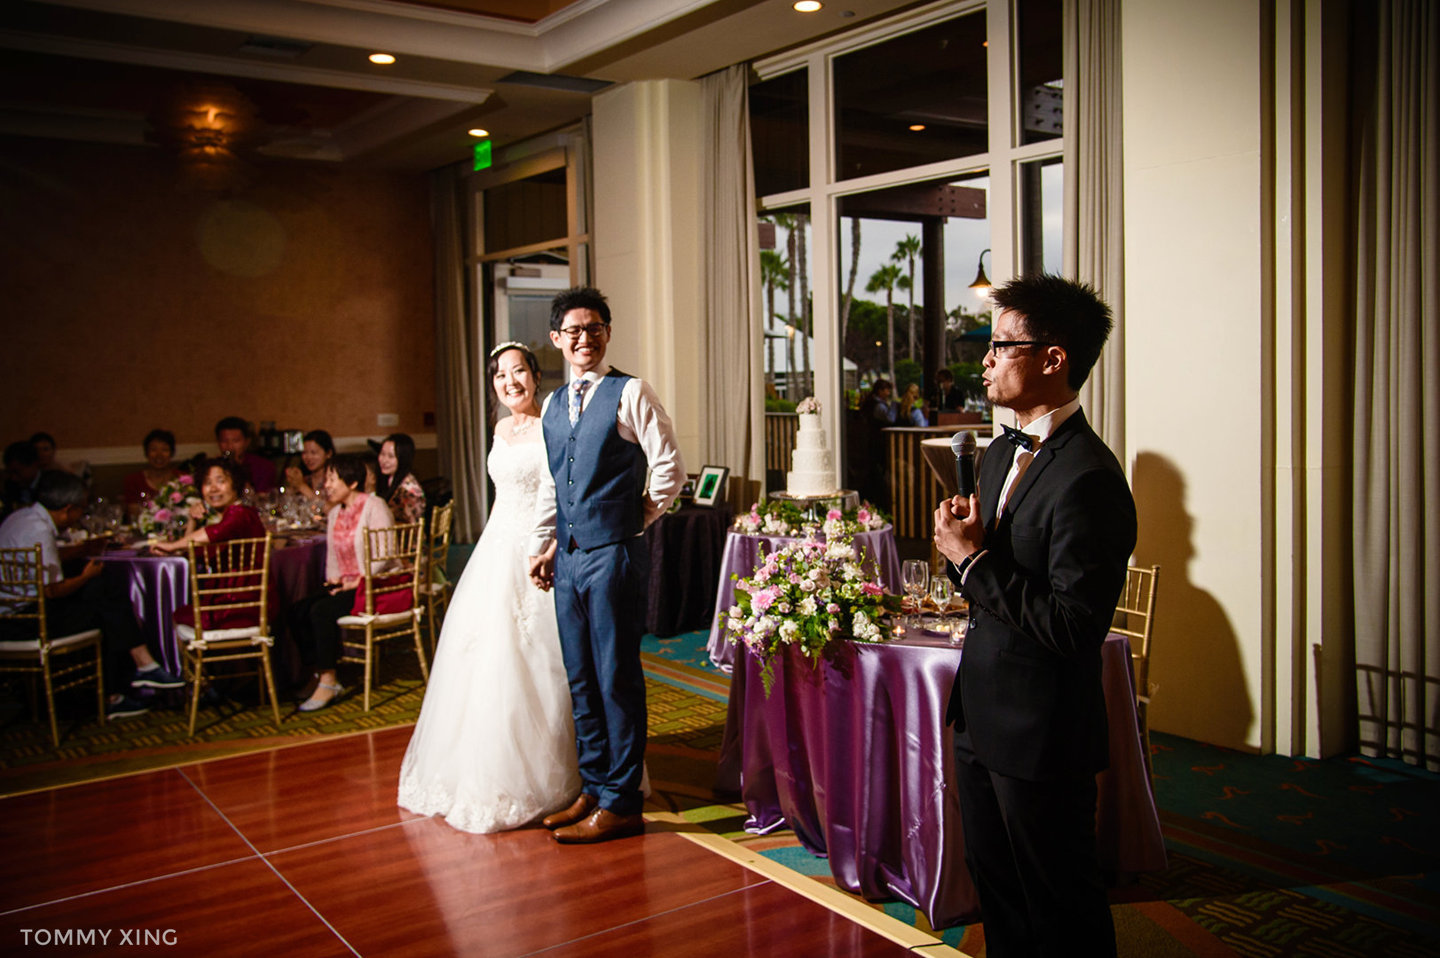 Paradise Point Resort Wedding Xiaolu & Bin San Diego 圣地亚哥婚礼摄影跟拍 Tommy Xing Photography 洛杉矶婚礼婚纱照摄影师 248.jpg